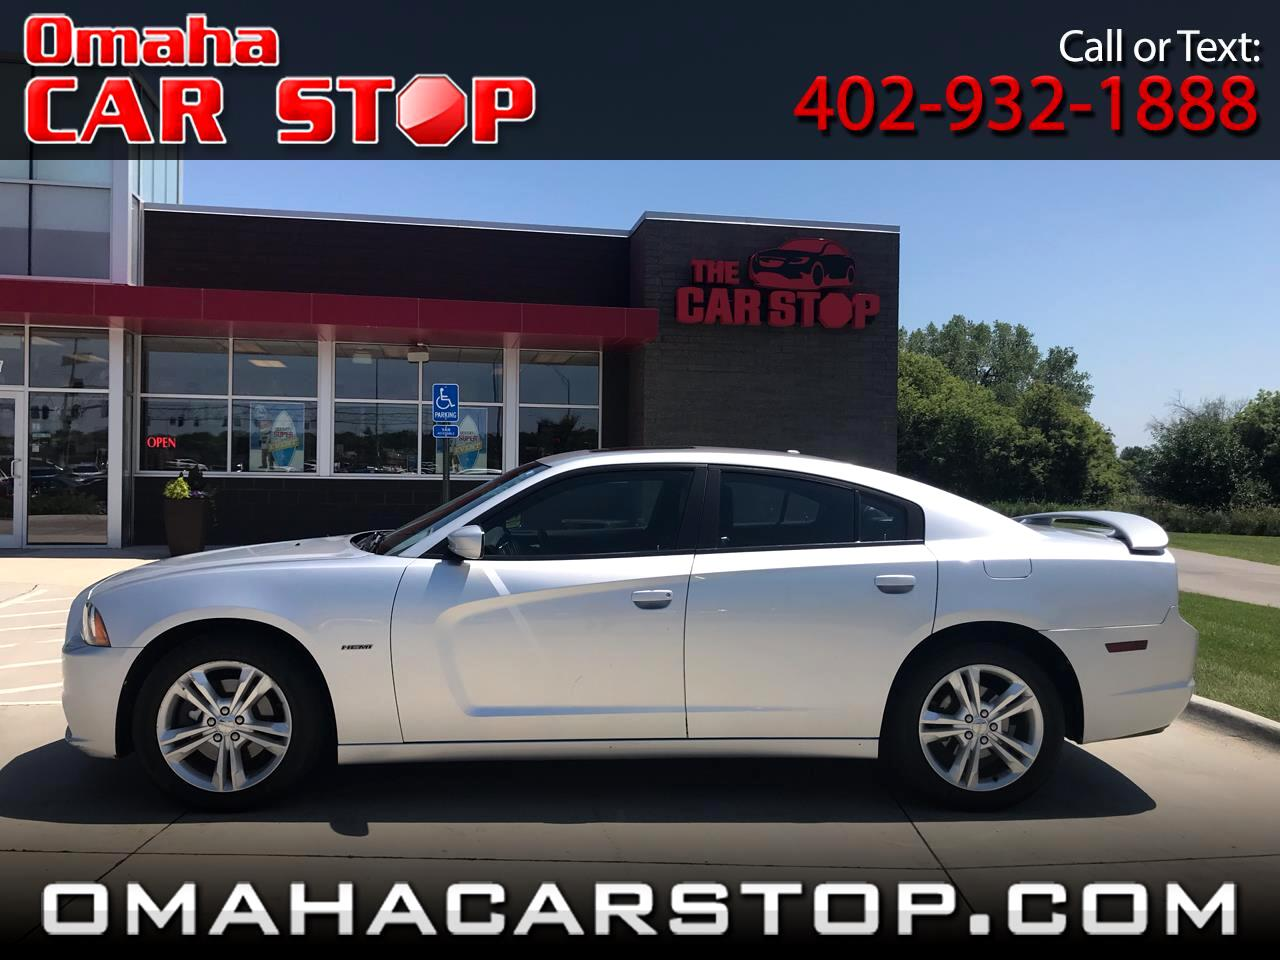 2011 Dodge Charger 4dr Sdn RT Plus AWD